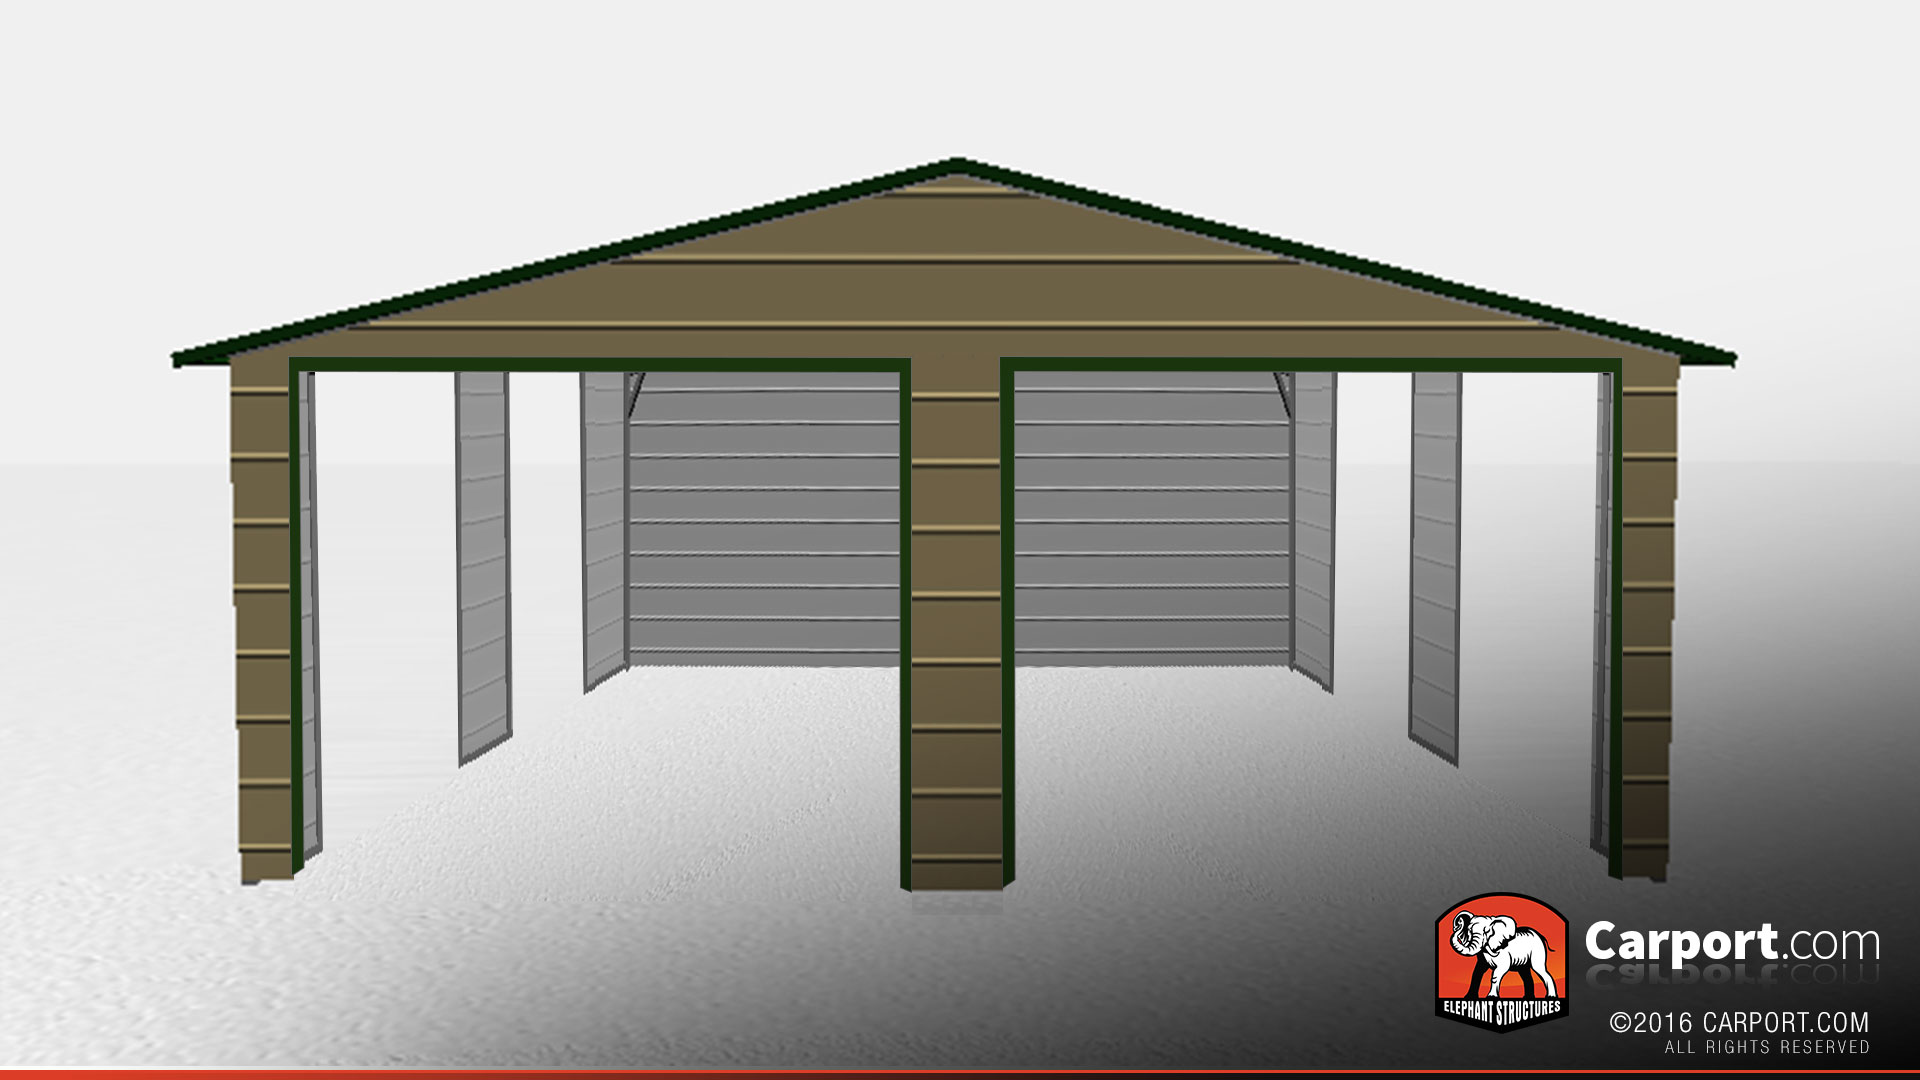 Metal Car Shelter : Metal car shelter with gables shop